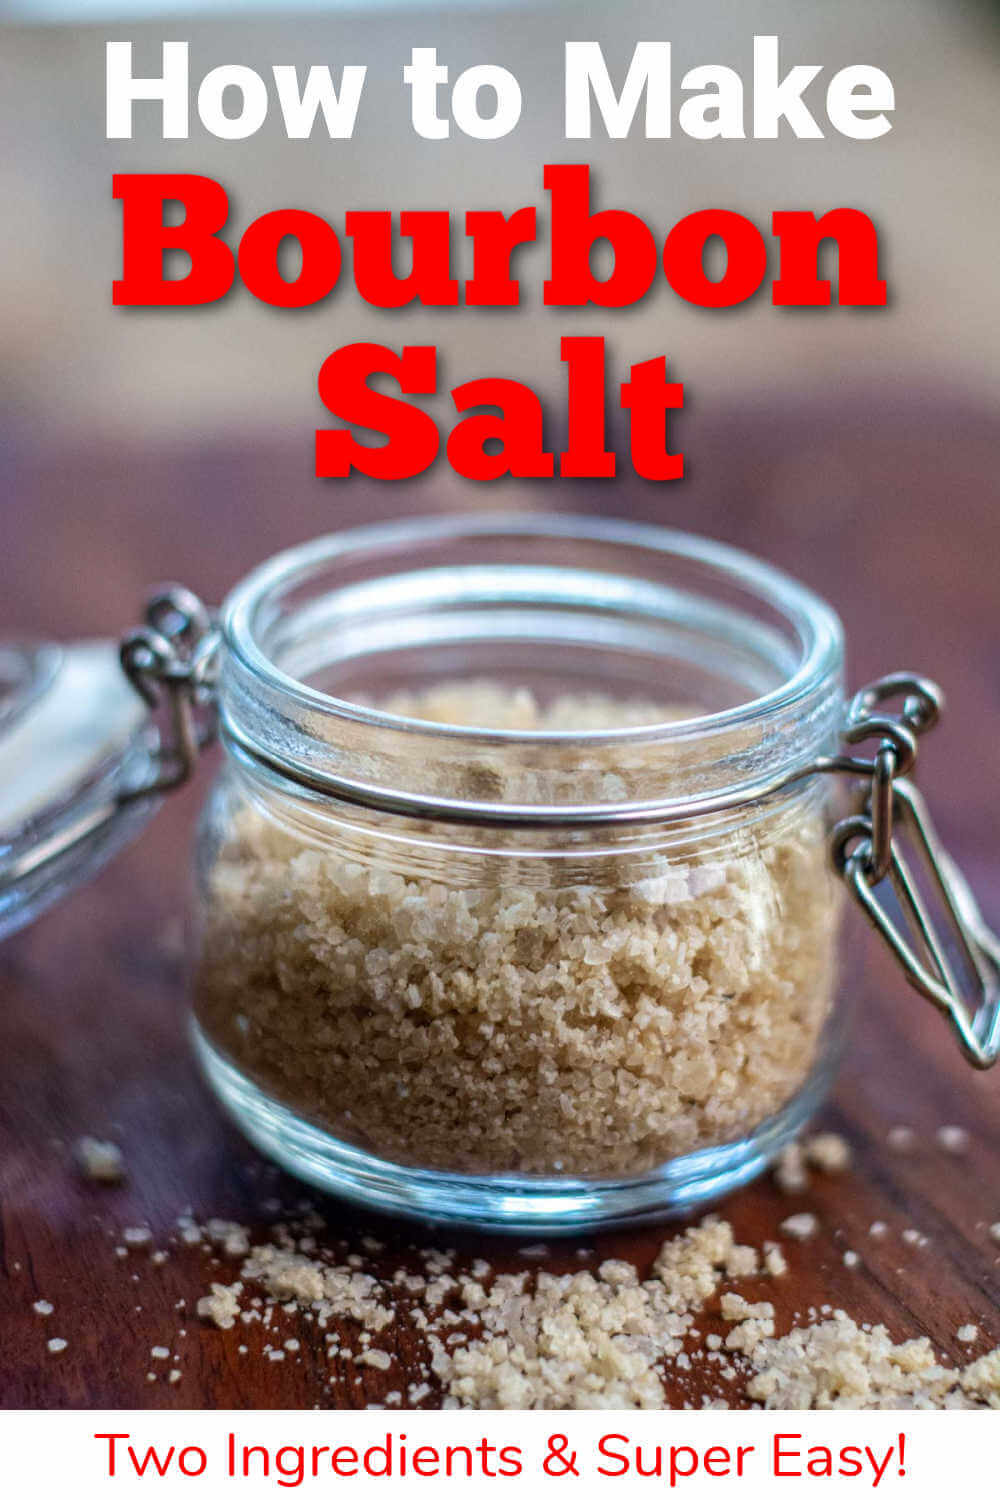 How to Make Bourbon Salt